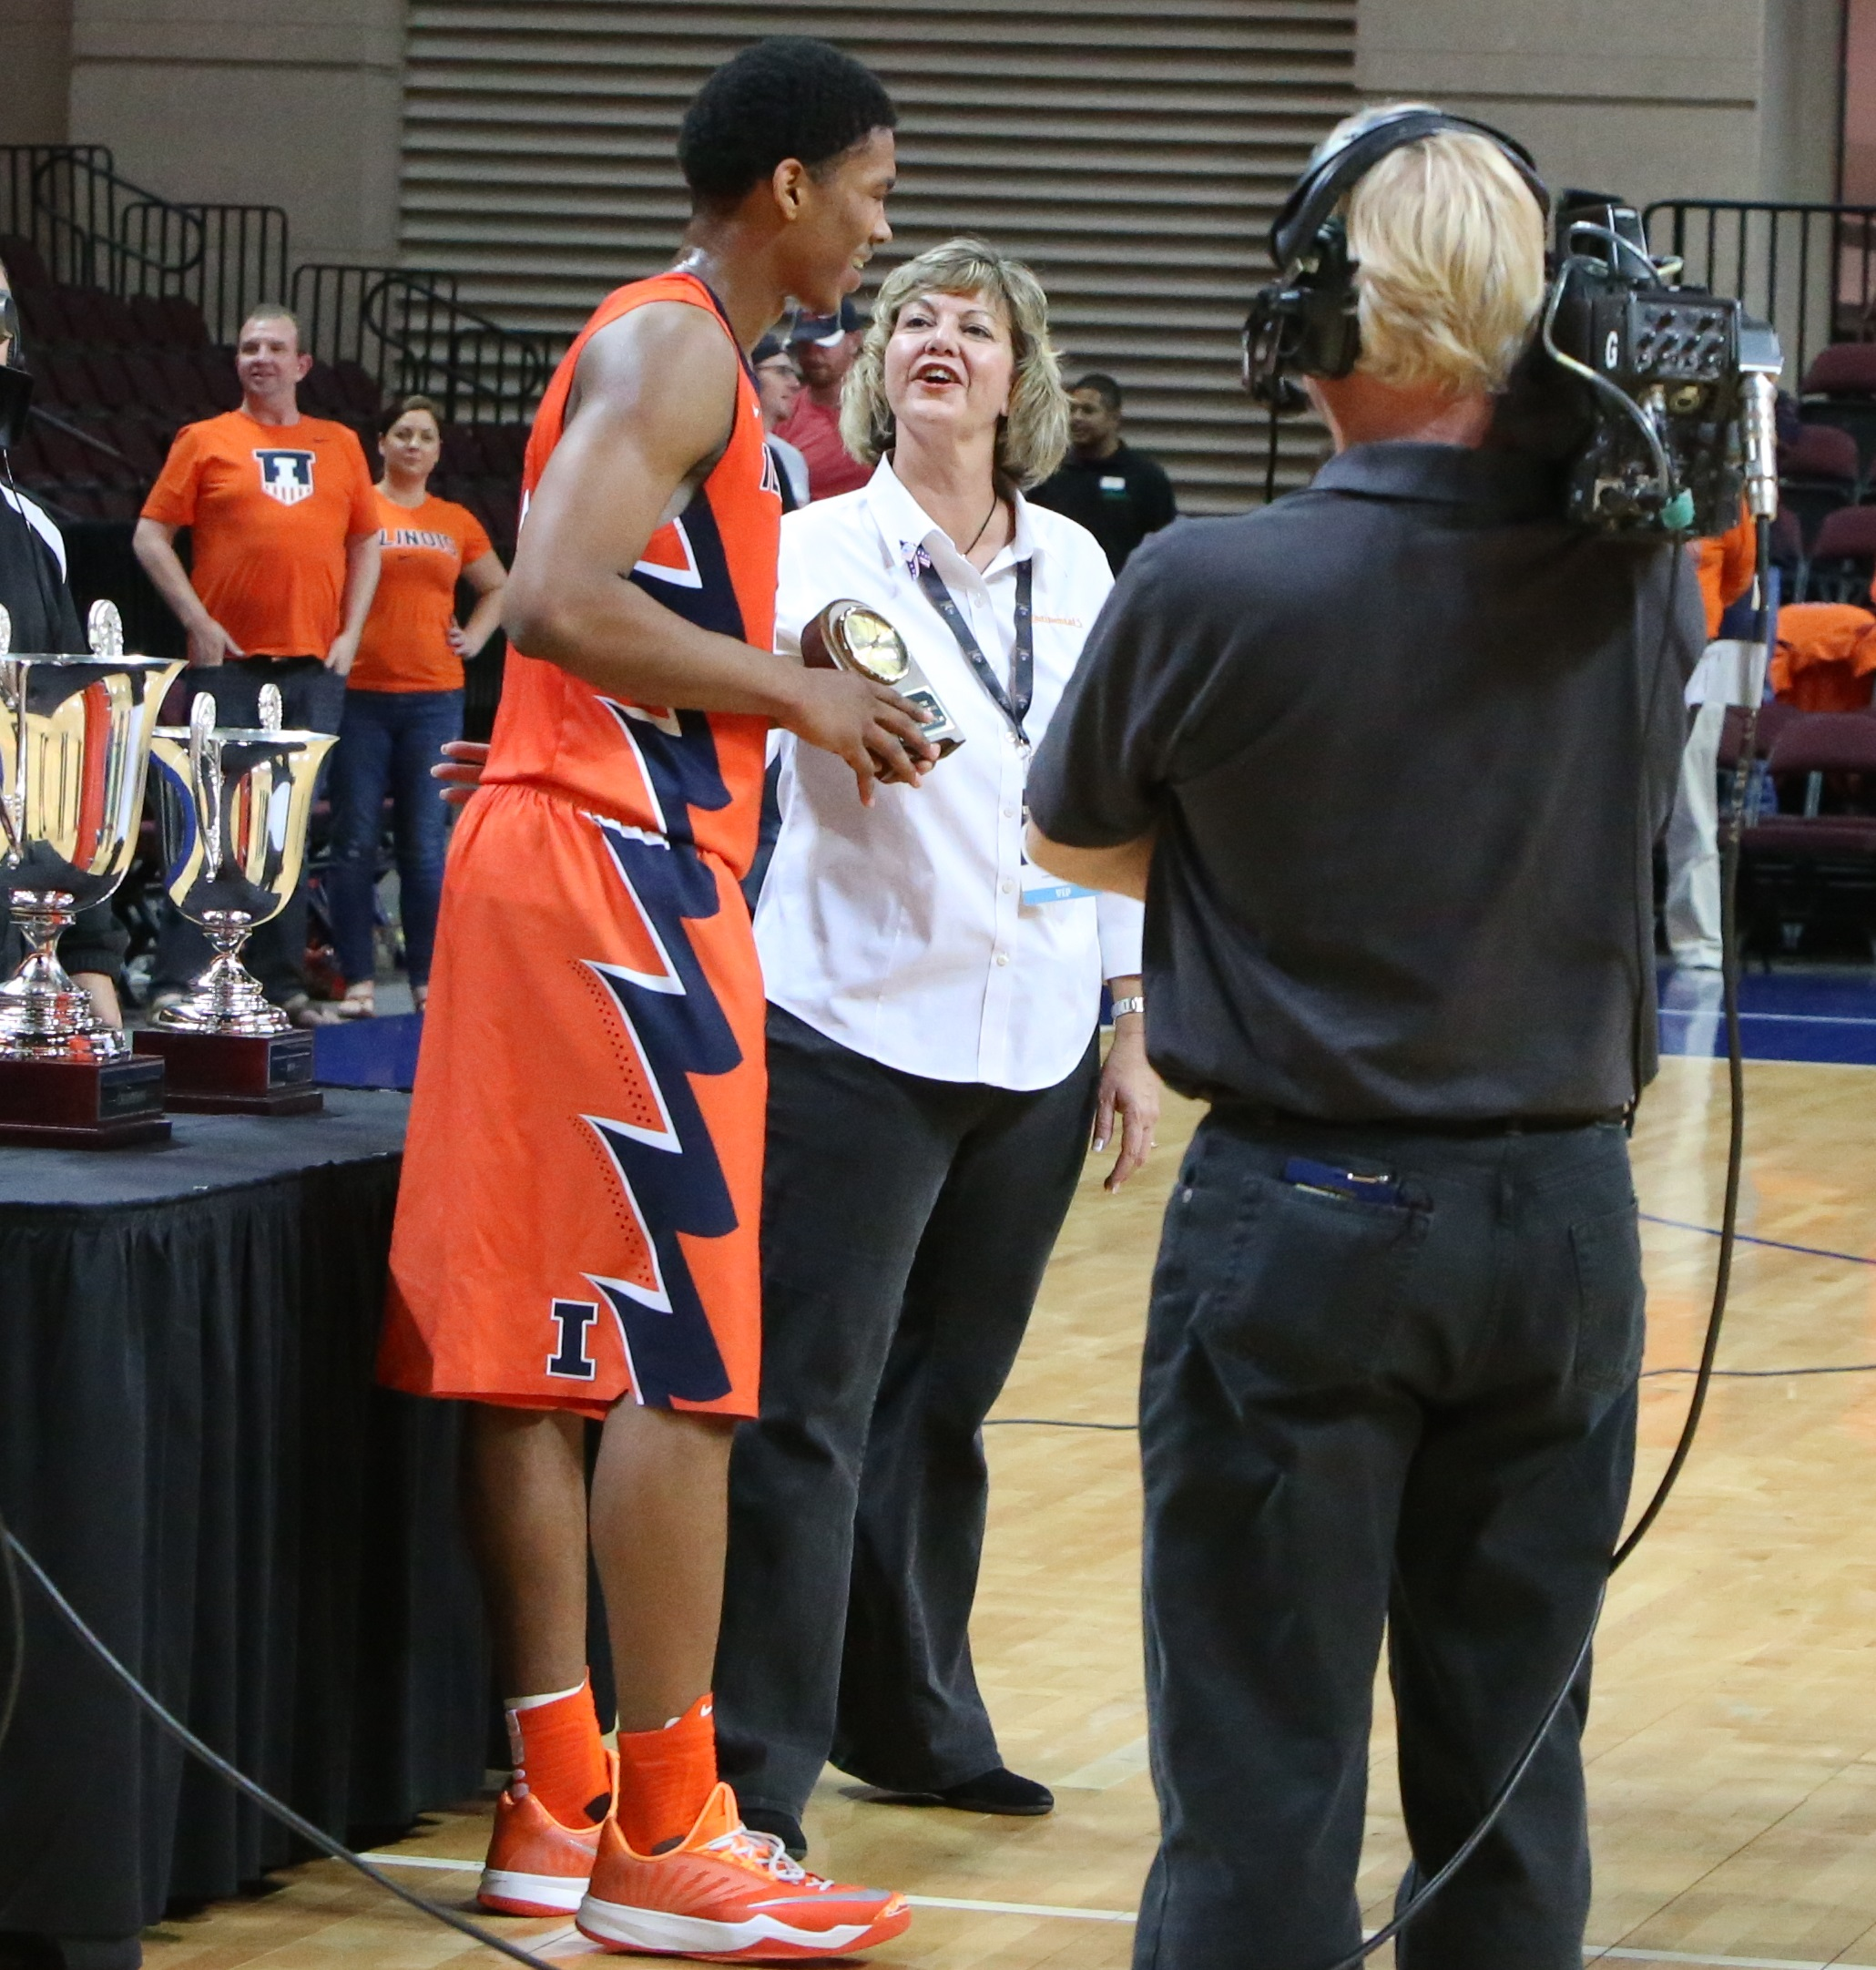 Malcolm accepts all-tourney trophy